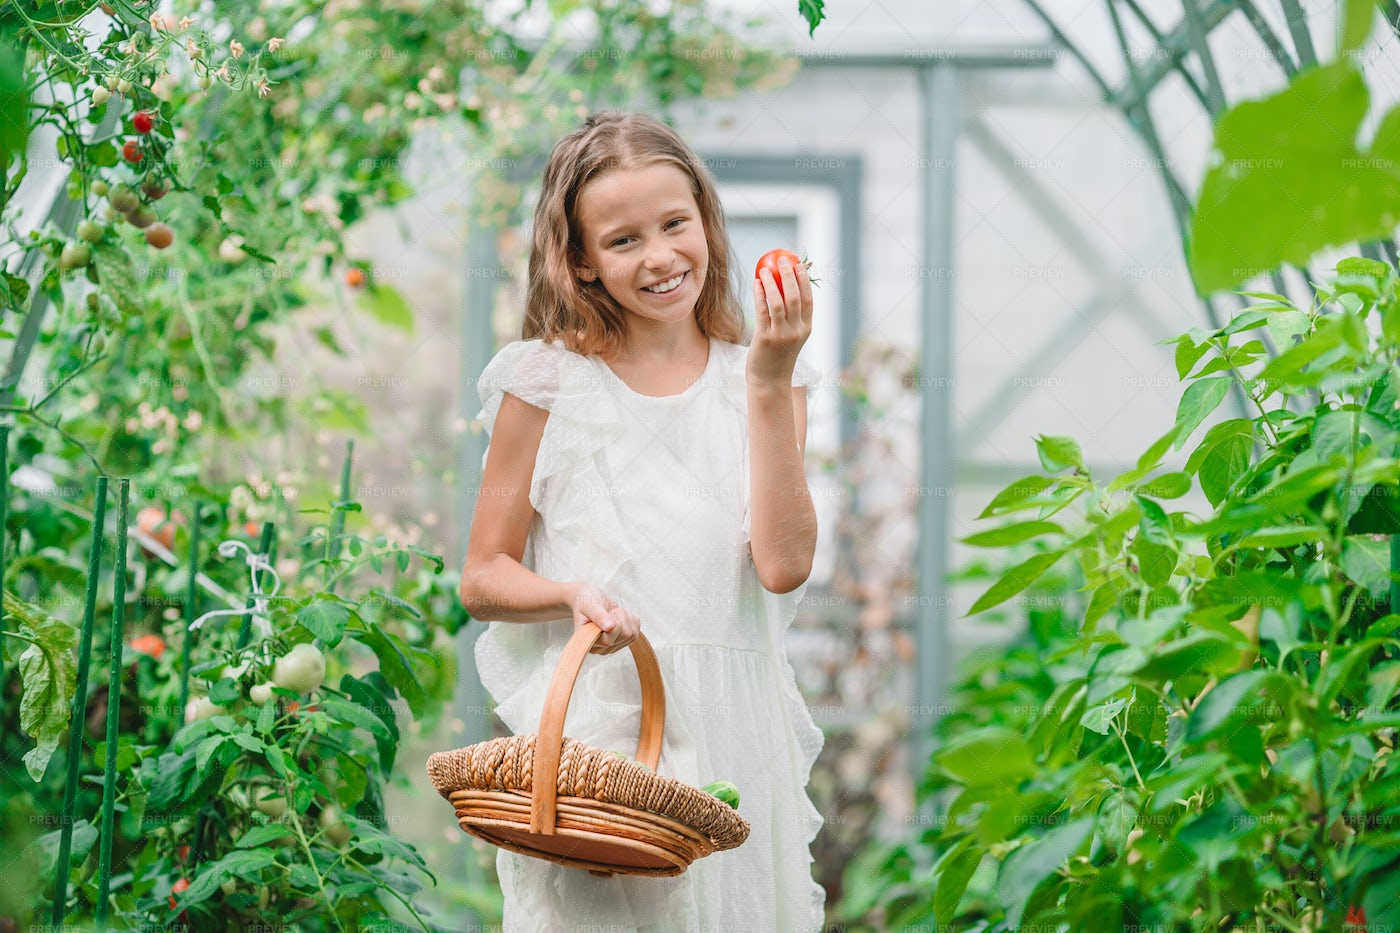 Little Girl Collecting Vegetables: Stock Photos